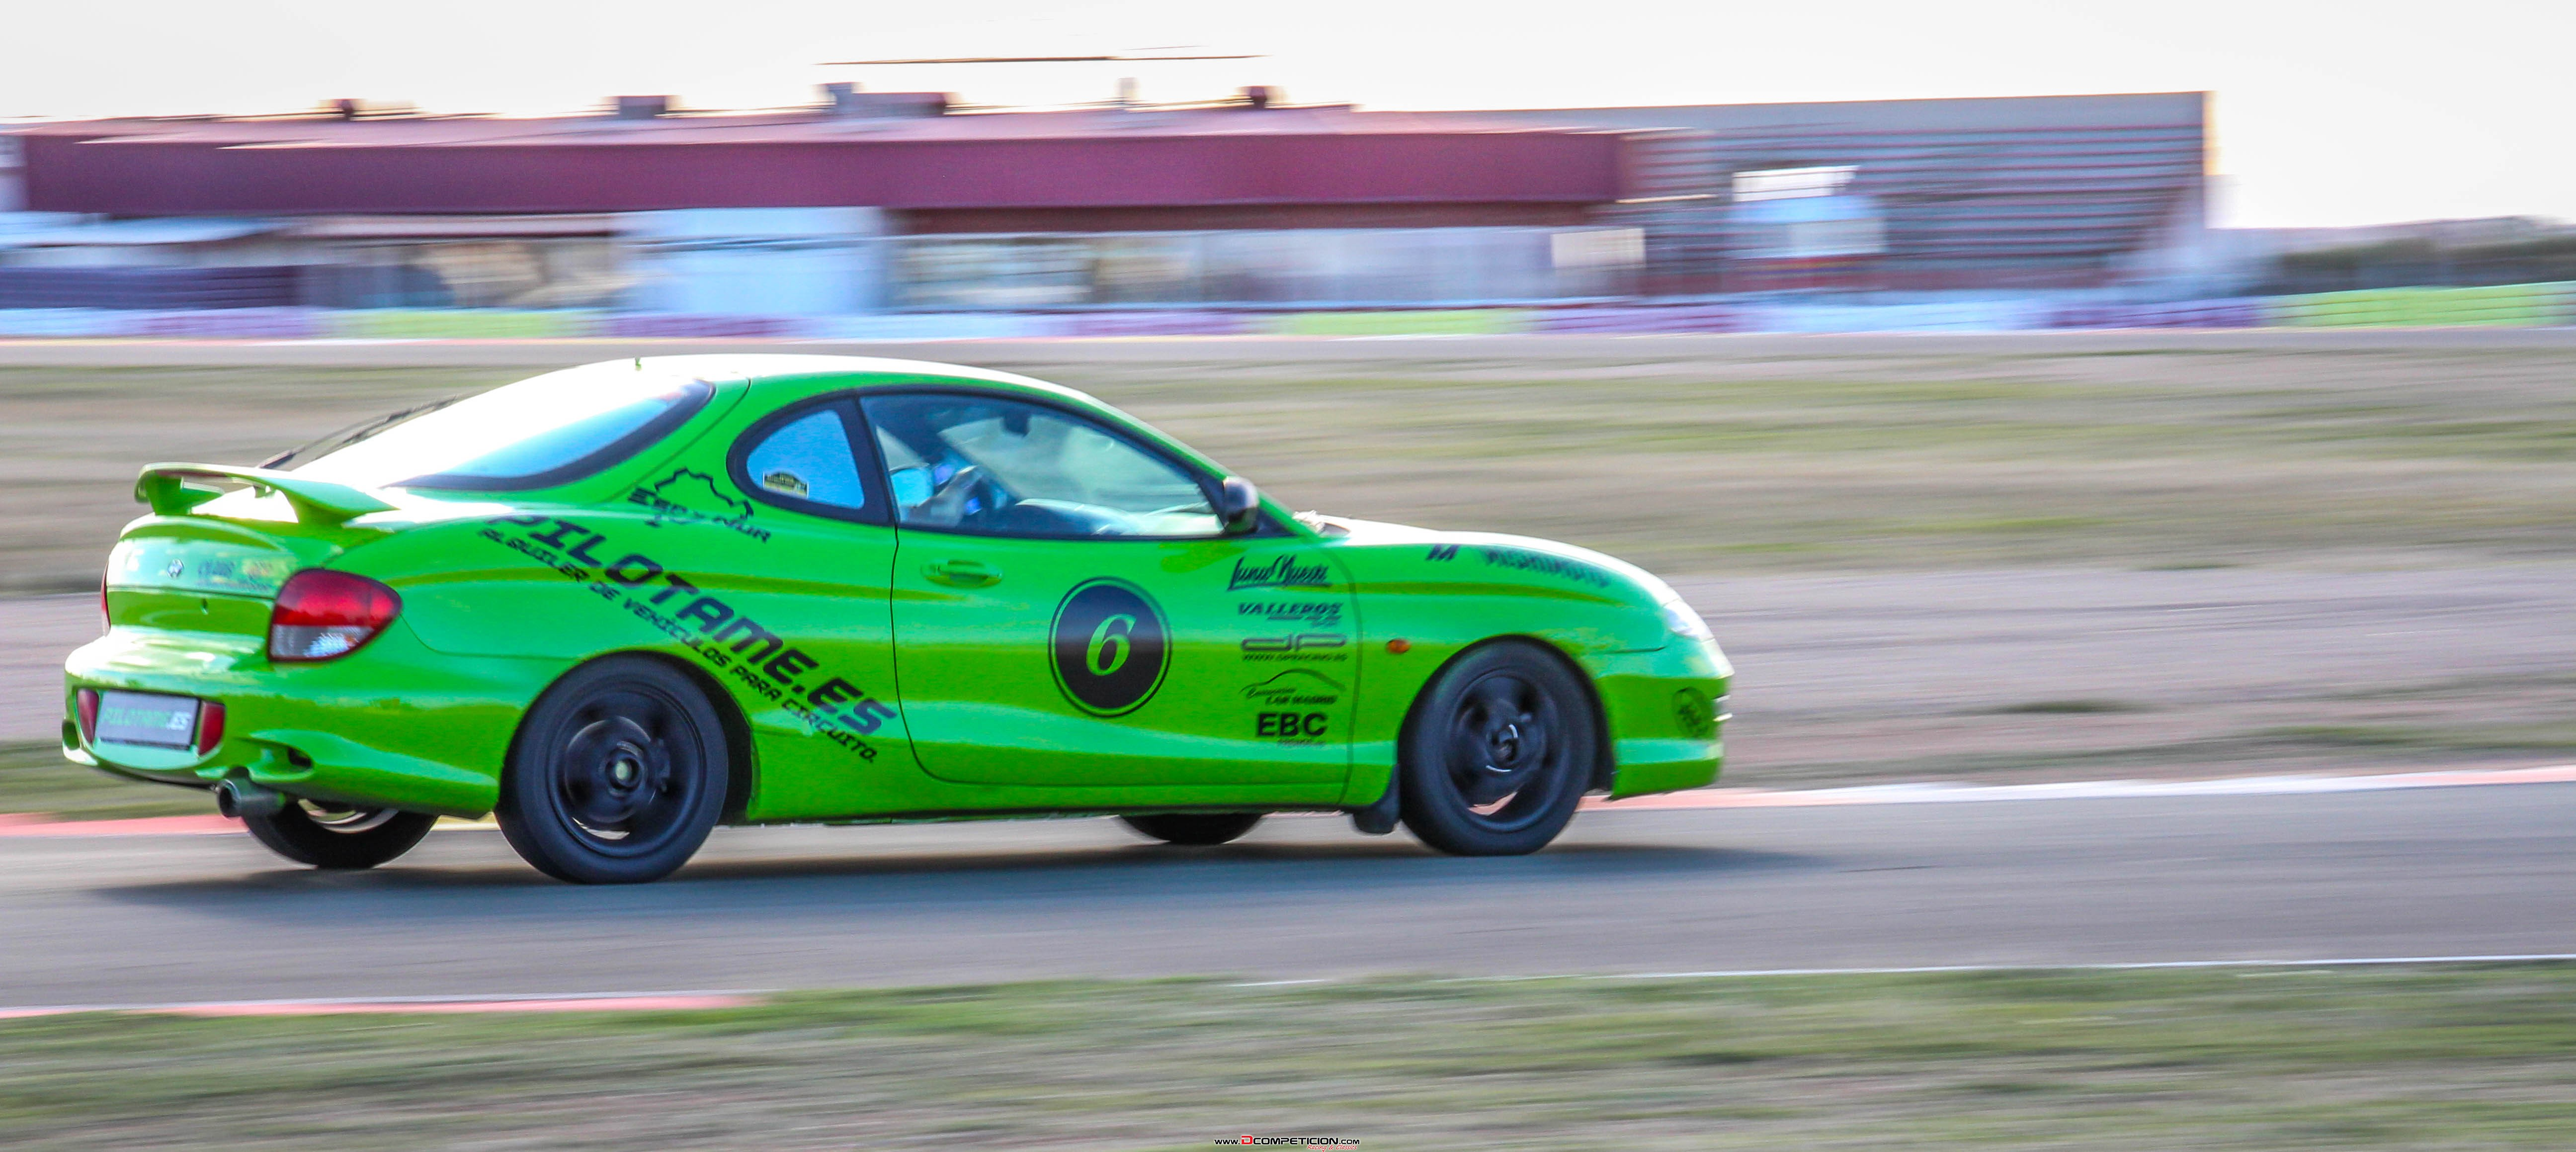 Hyundai Coupe LCC CUP